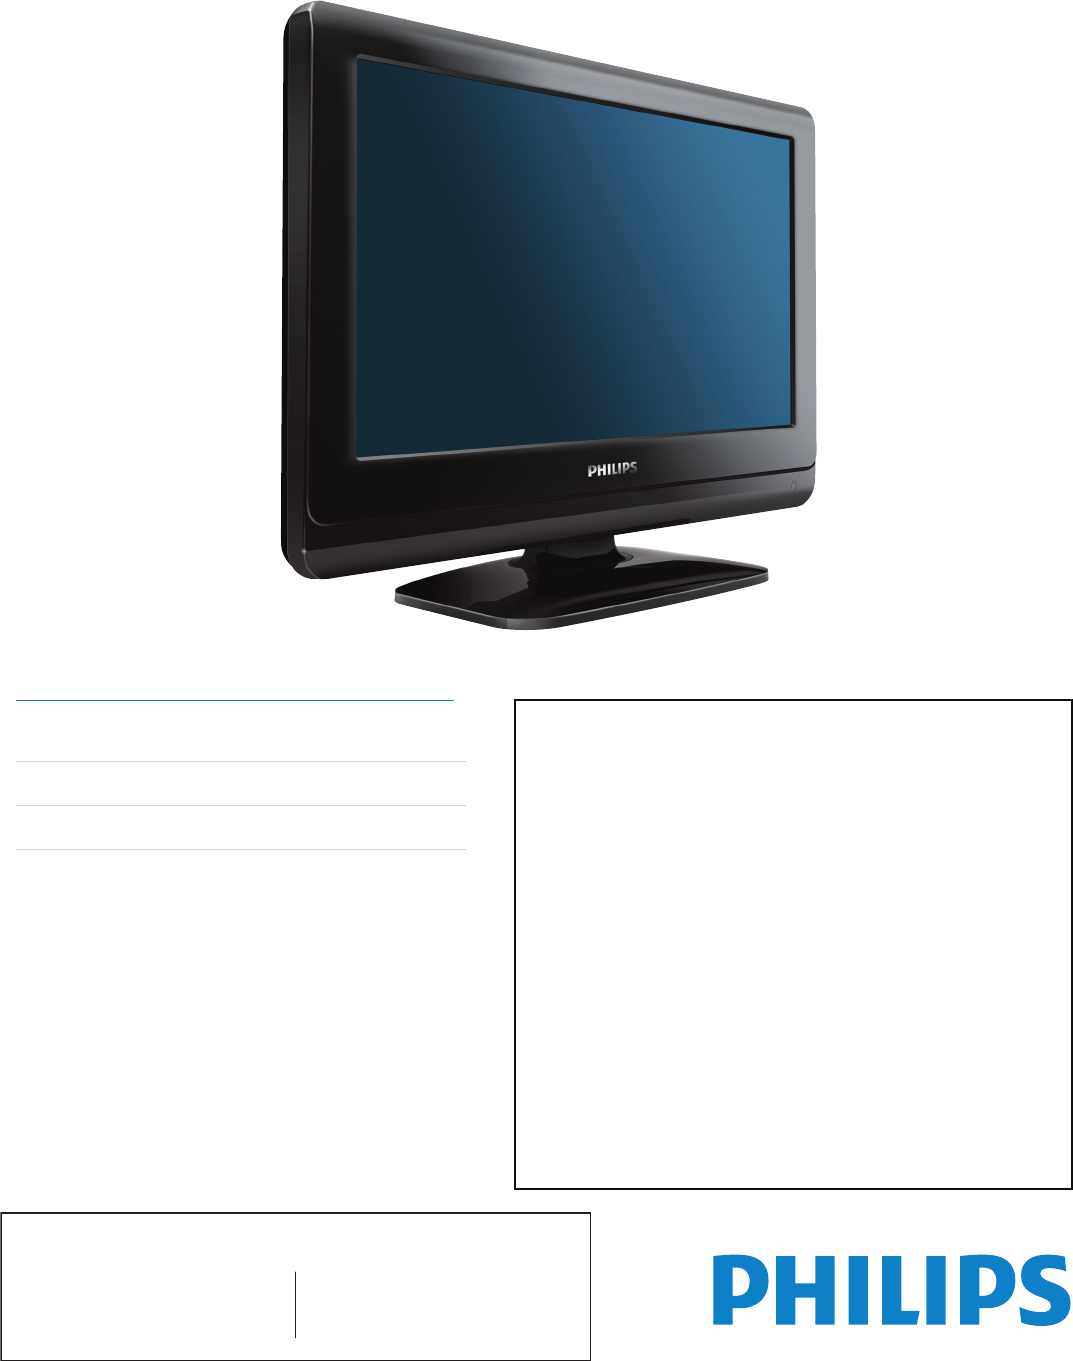 philips flat panel television 19pfl3504d user guide manual da tv philips philips 55 tv manual